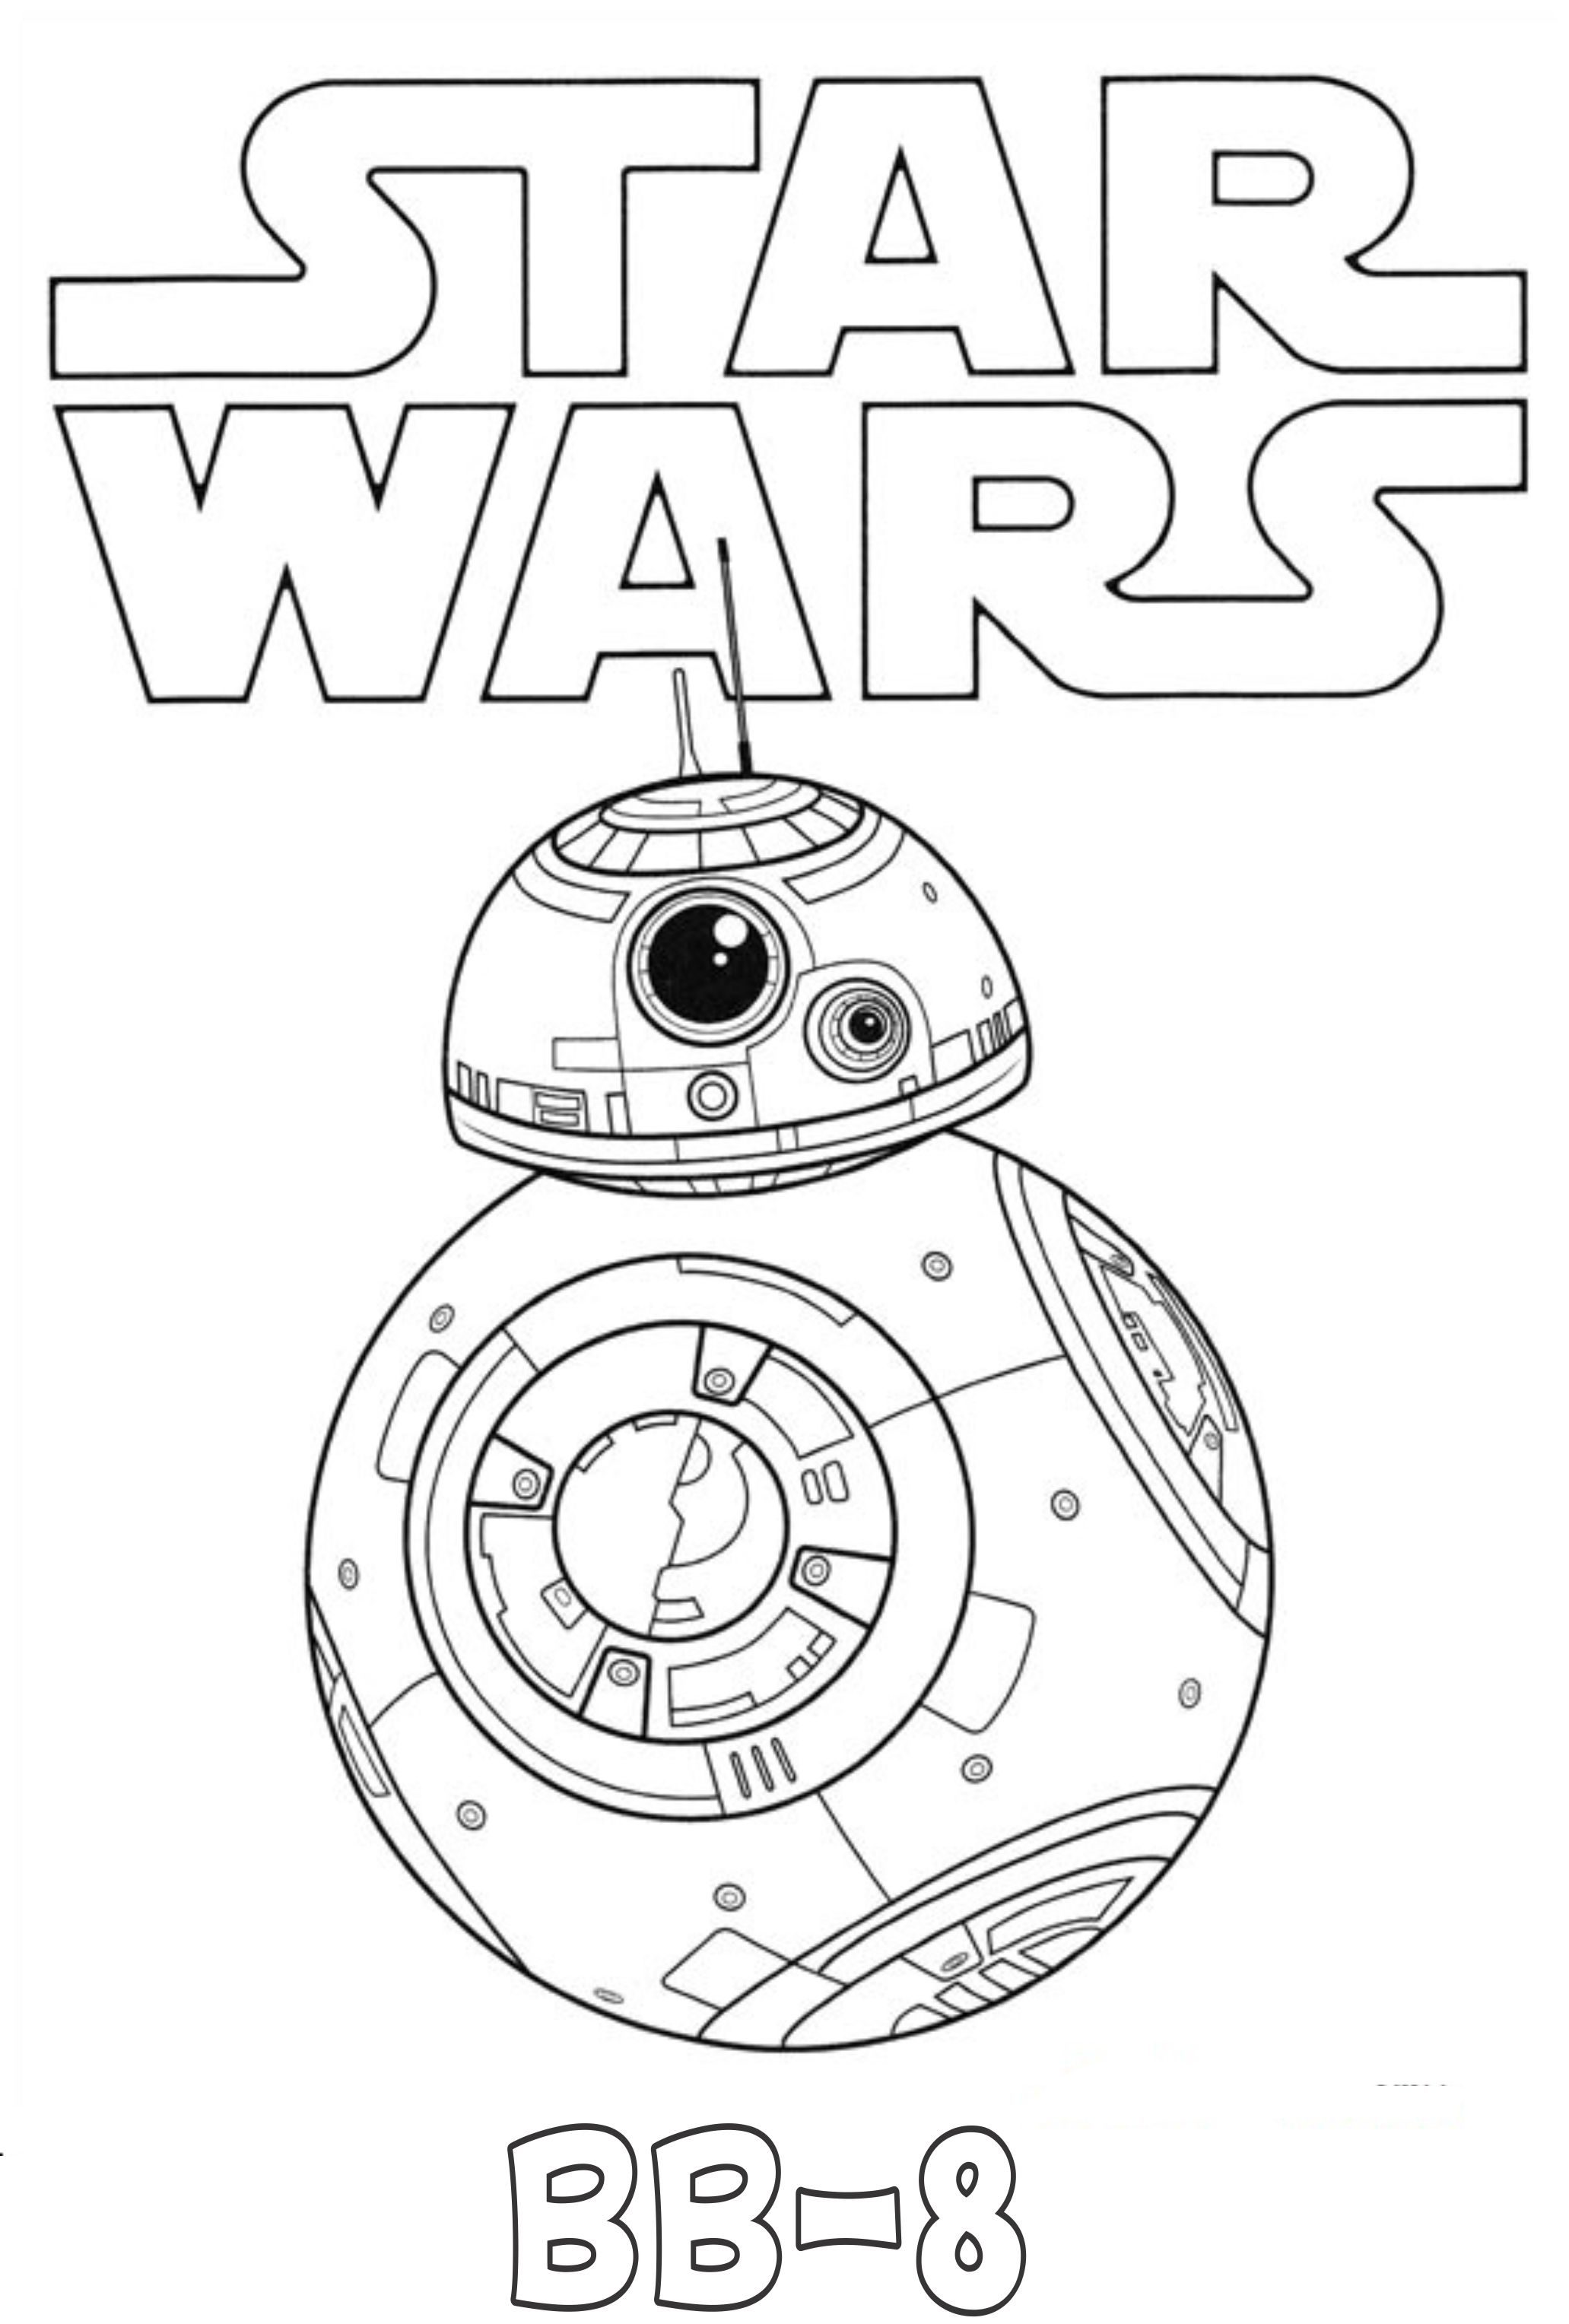 Star Wars Coloring Pages | Free coloring pages printable ...